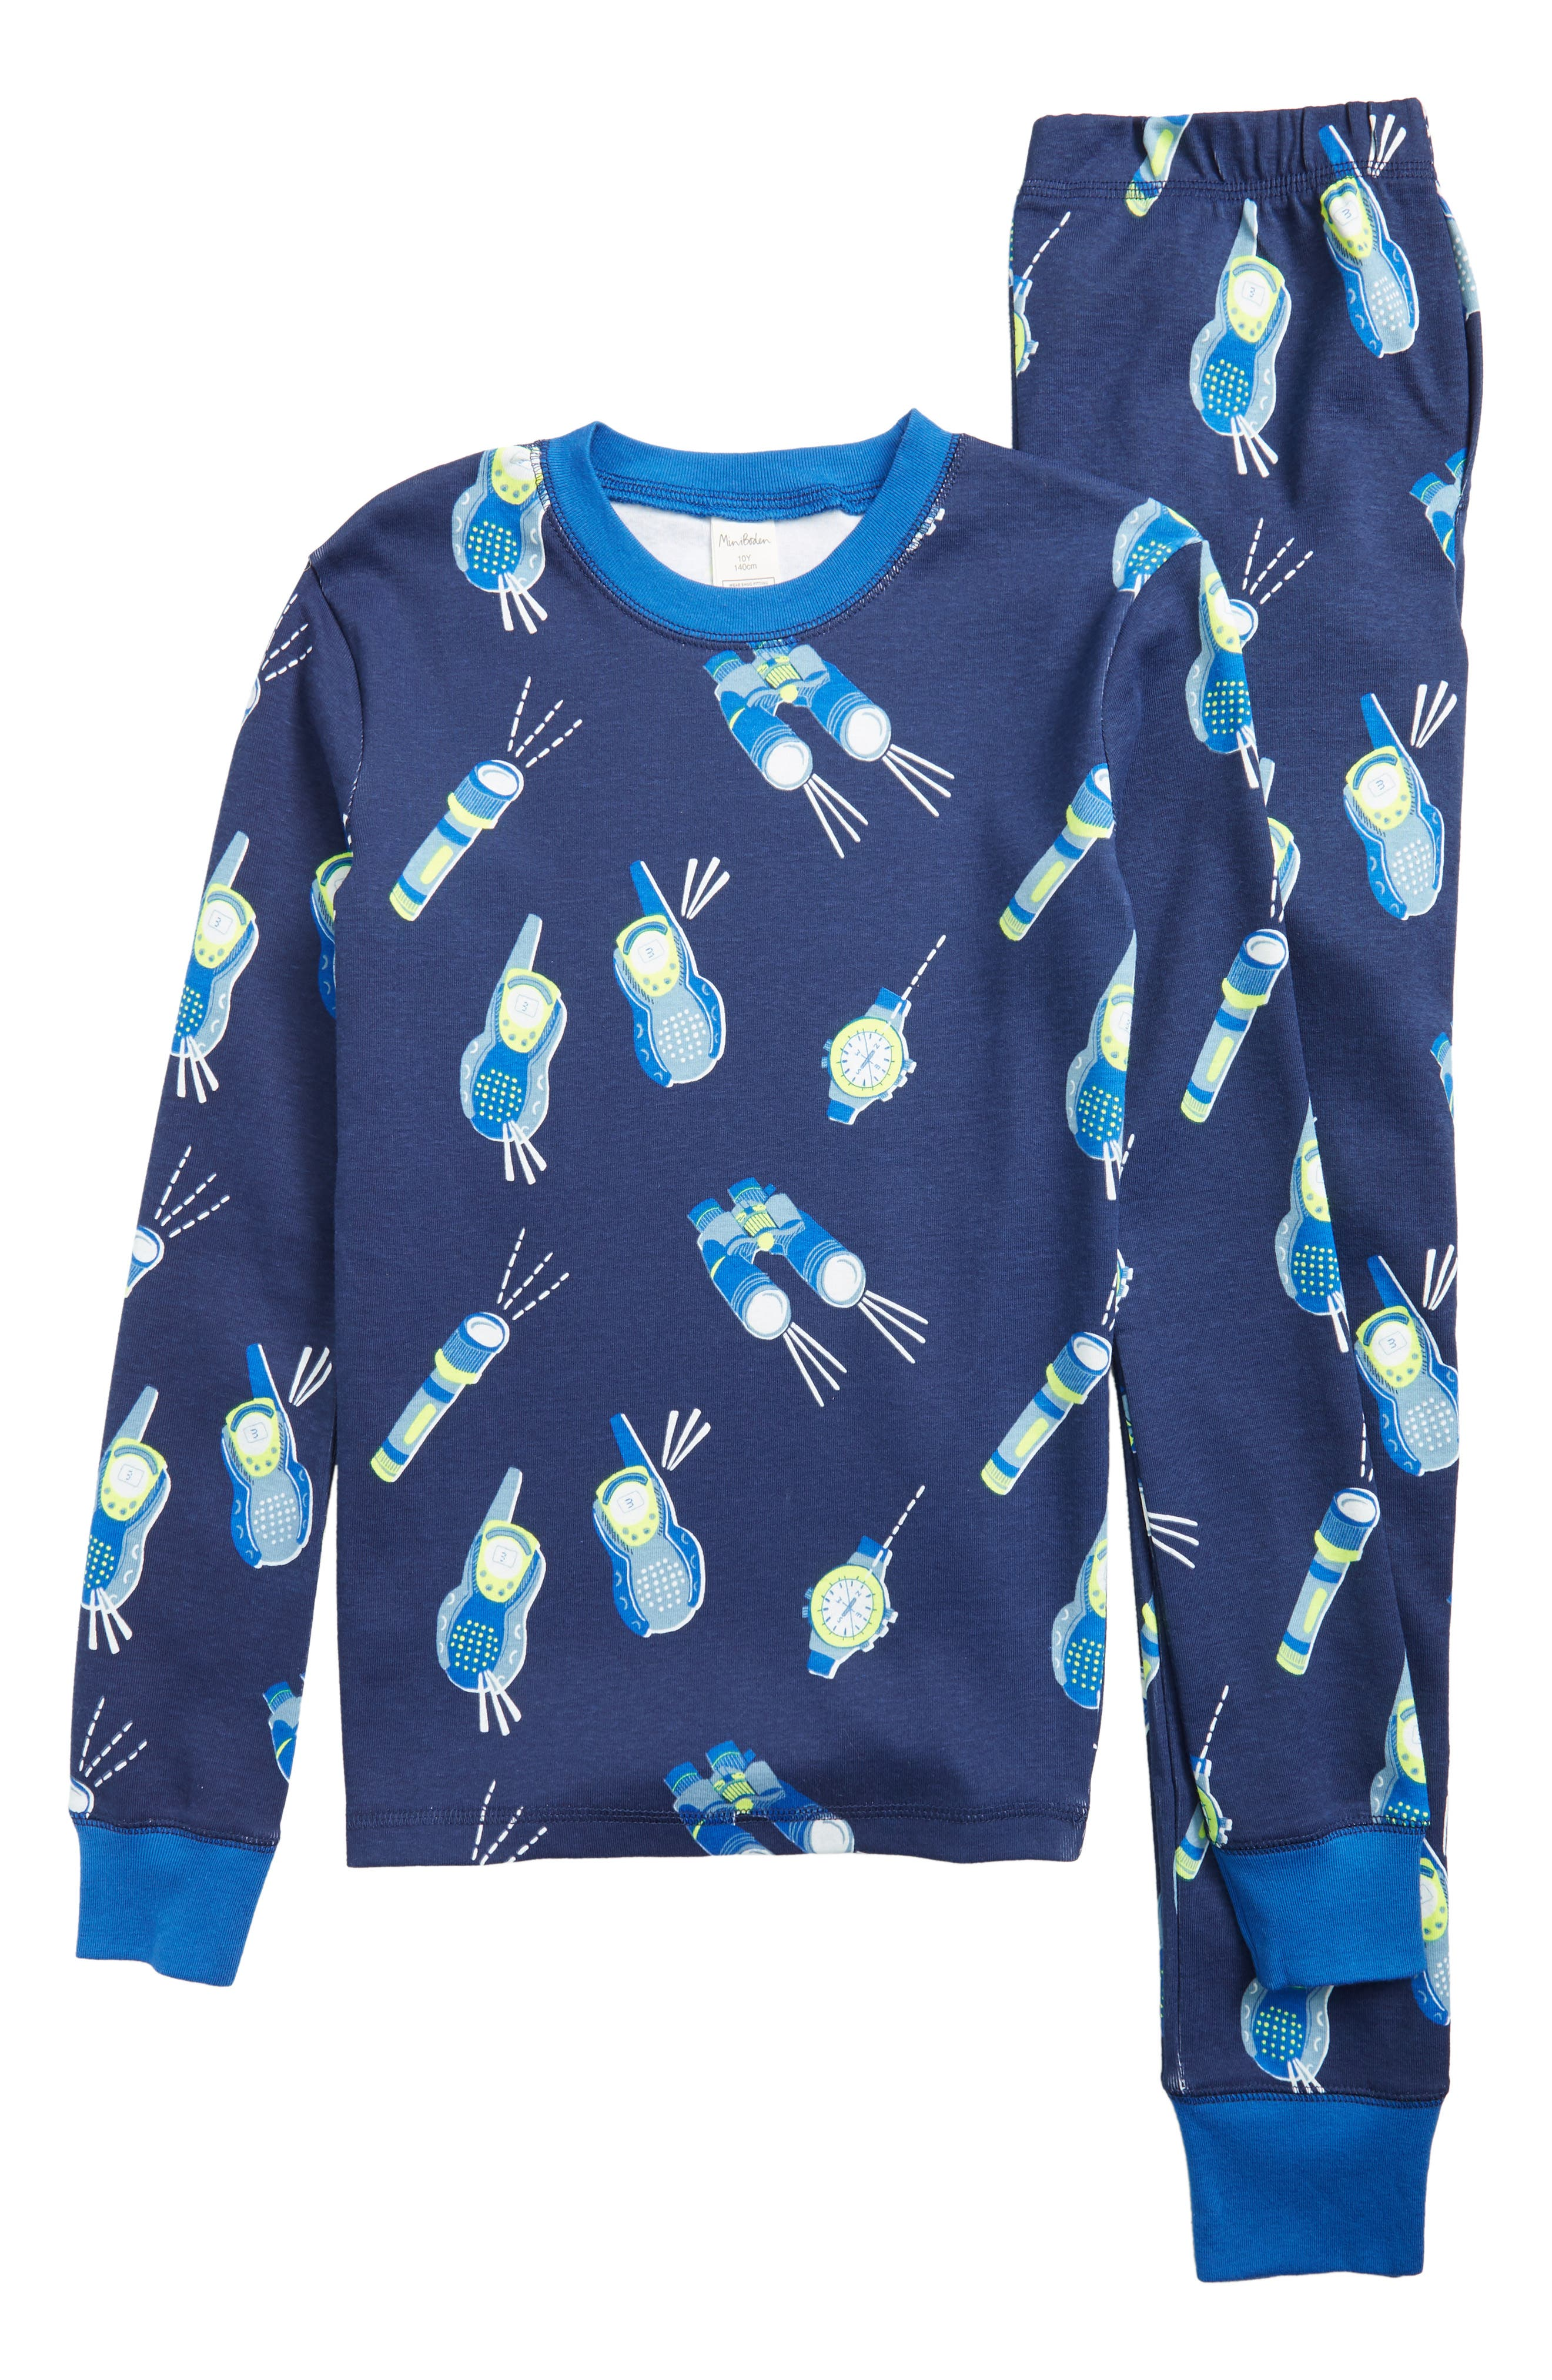 Mini Boden Glow in the Dark Fitted Two-Piece Pajamas,                             Main thumbnail 1, color,                             BLUE COLLEGE WALKIE TALKIE